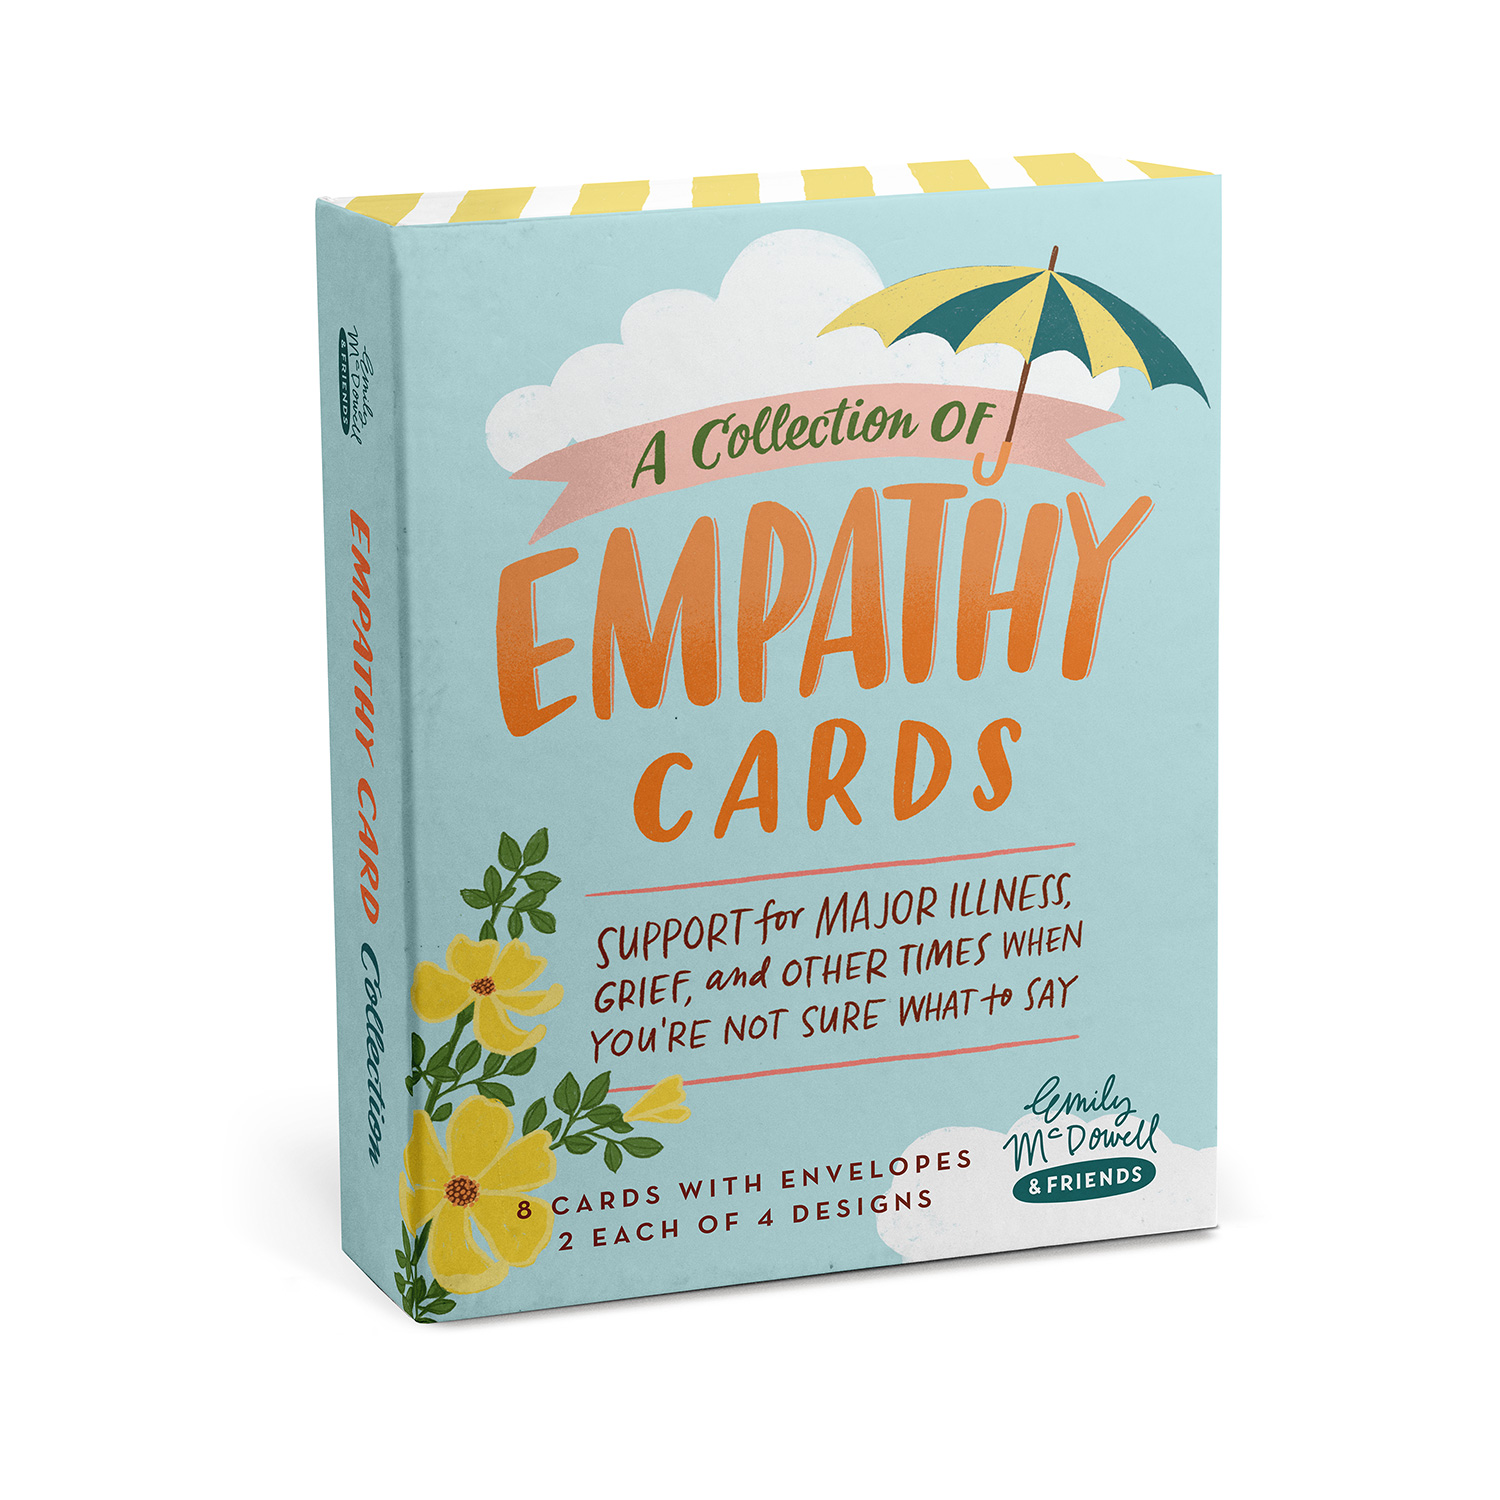 Empathy Cards: Mixed Box Card Sets